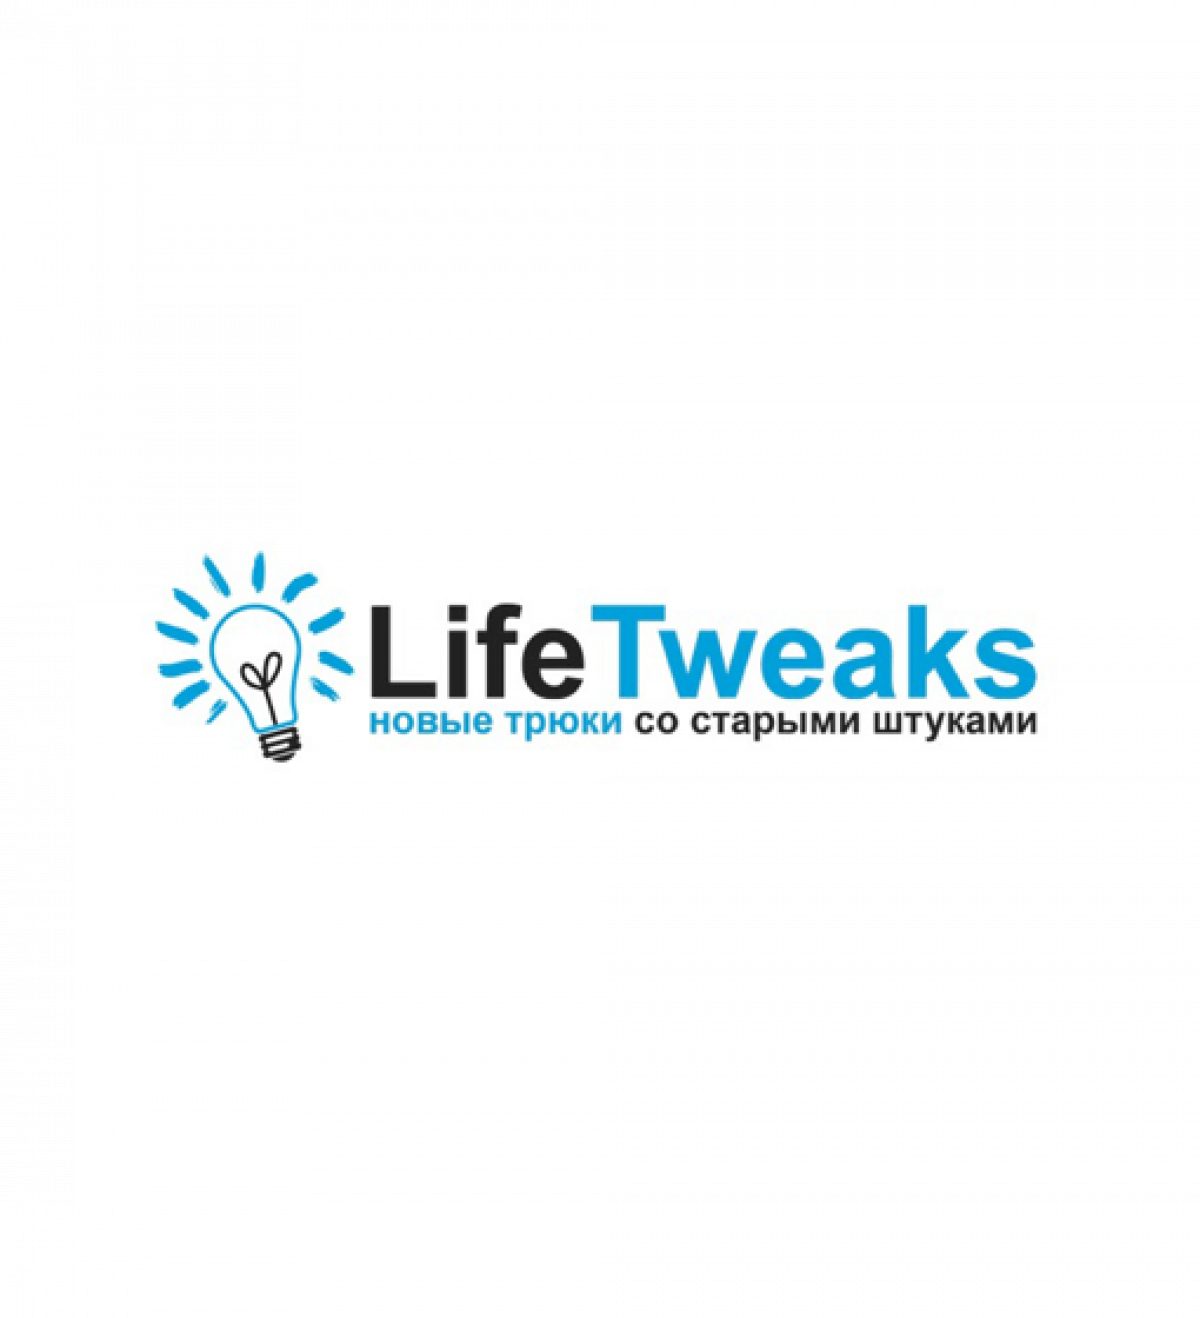 LifeTweaks